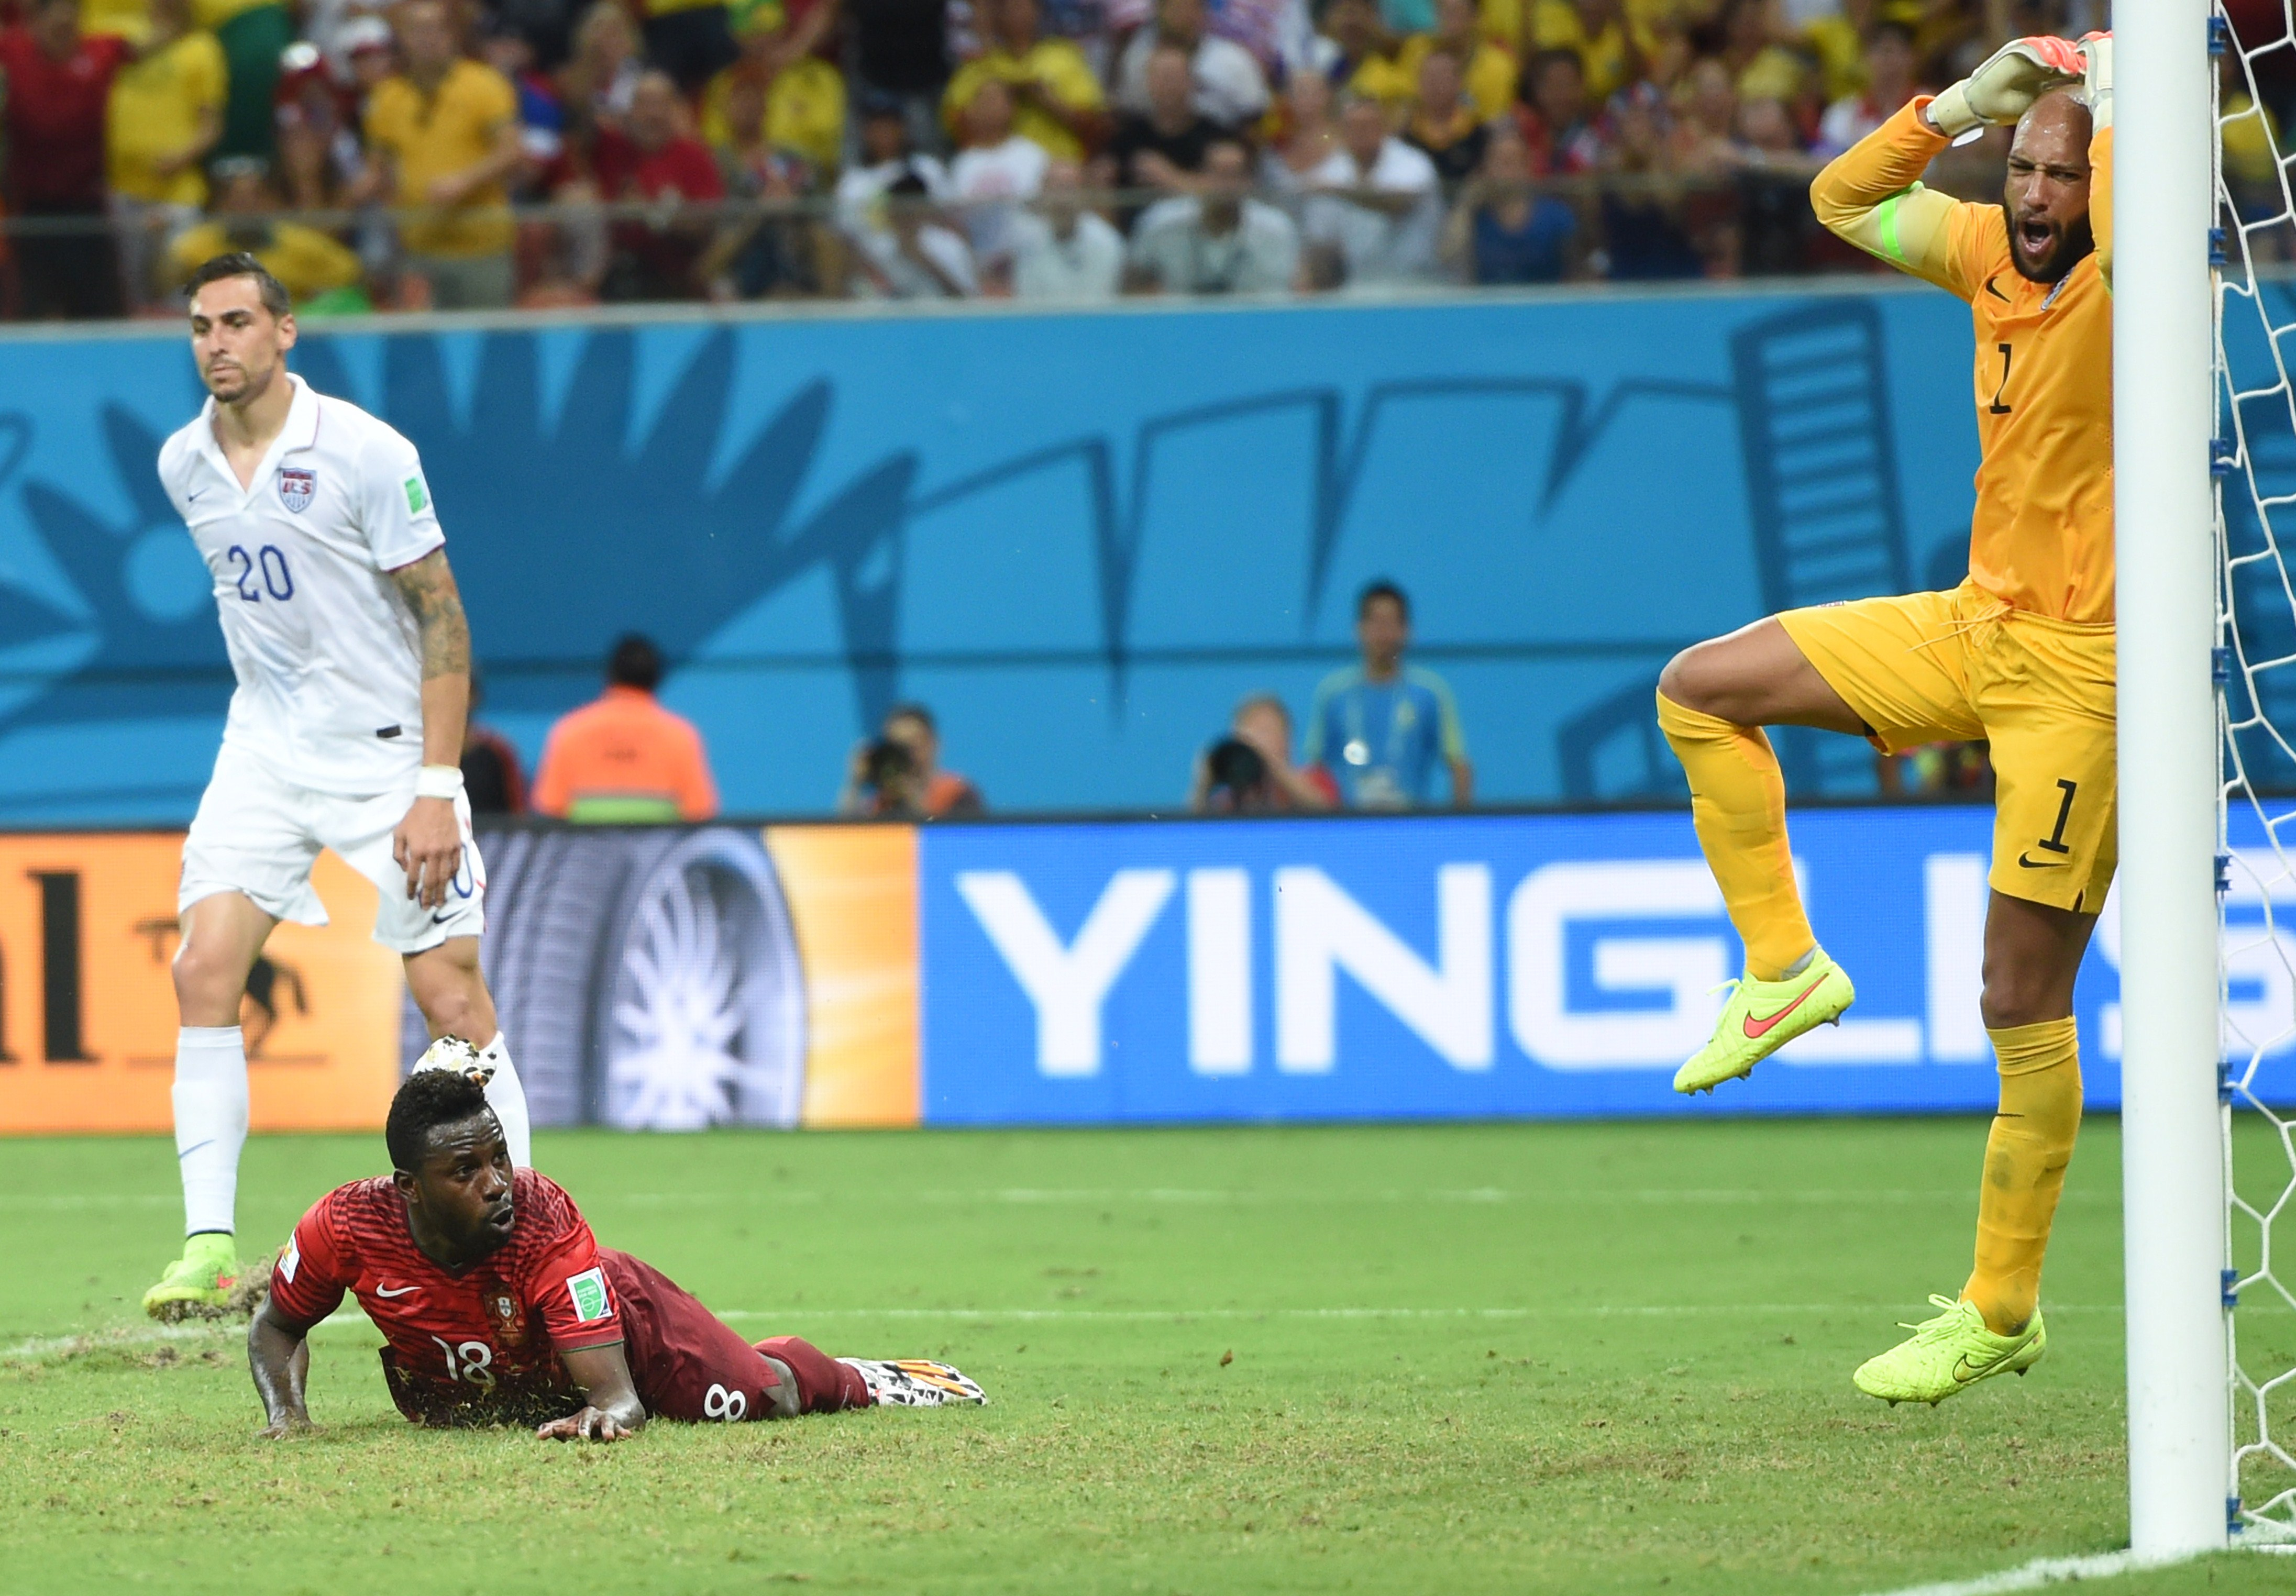 US goalkeeper Tim Howard reacts after a goal from Portugal's forward Silvestre Varela during a Group G match between USA and Portugal at the Amazonia Arena in Manau. Brazil during the 2014 FIFA World Cup on June 22, 2014.